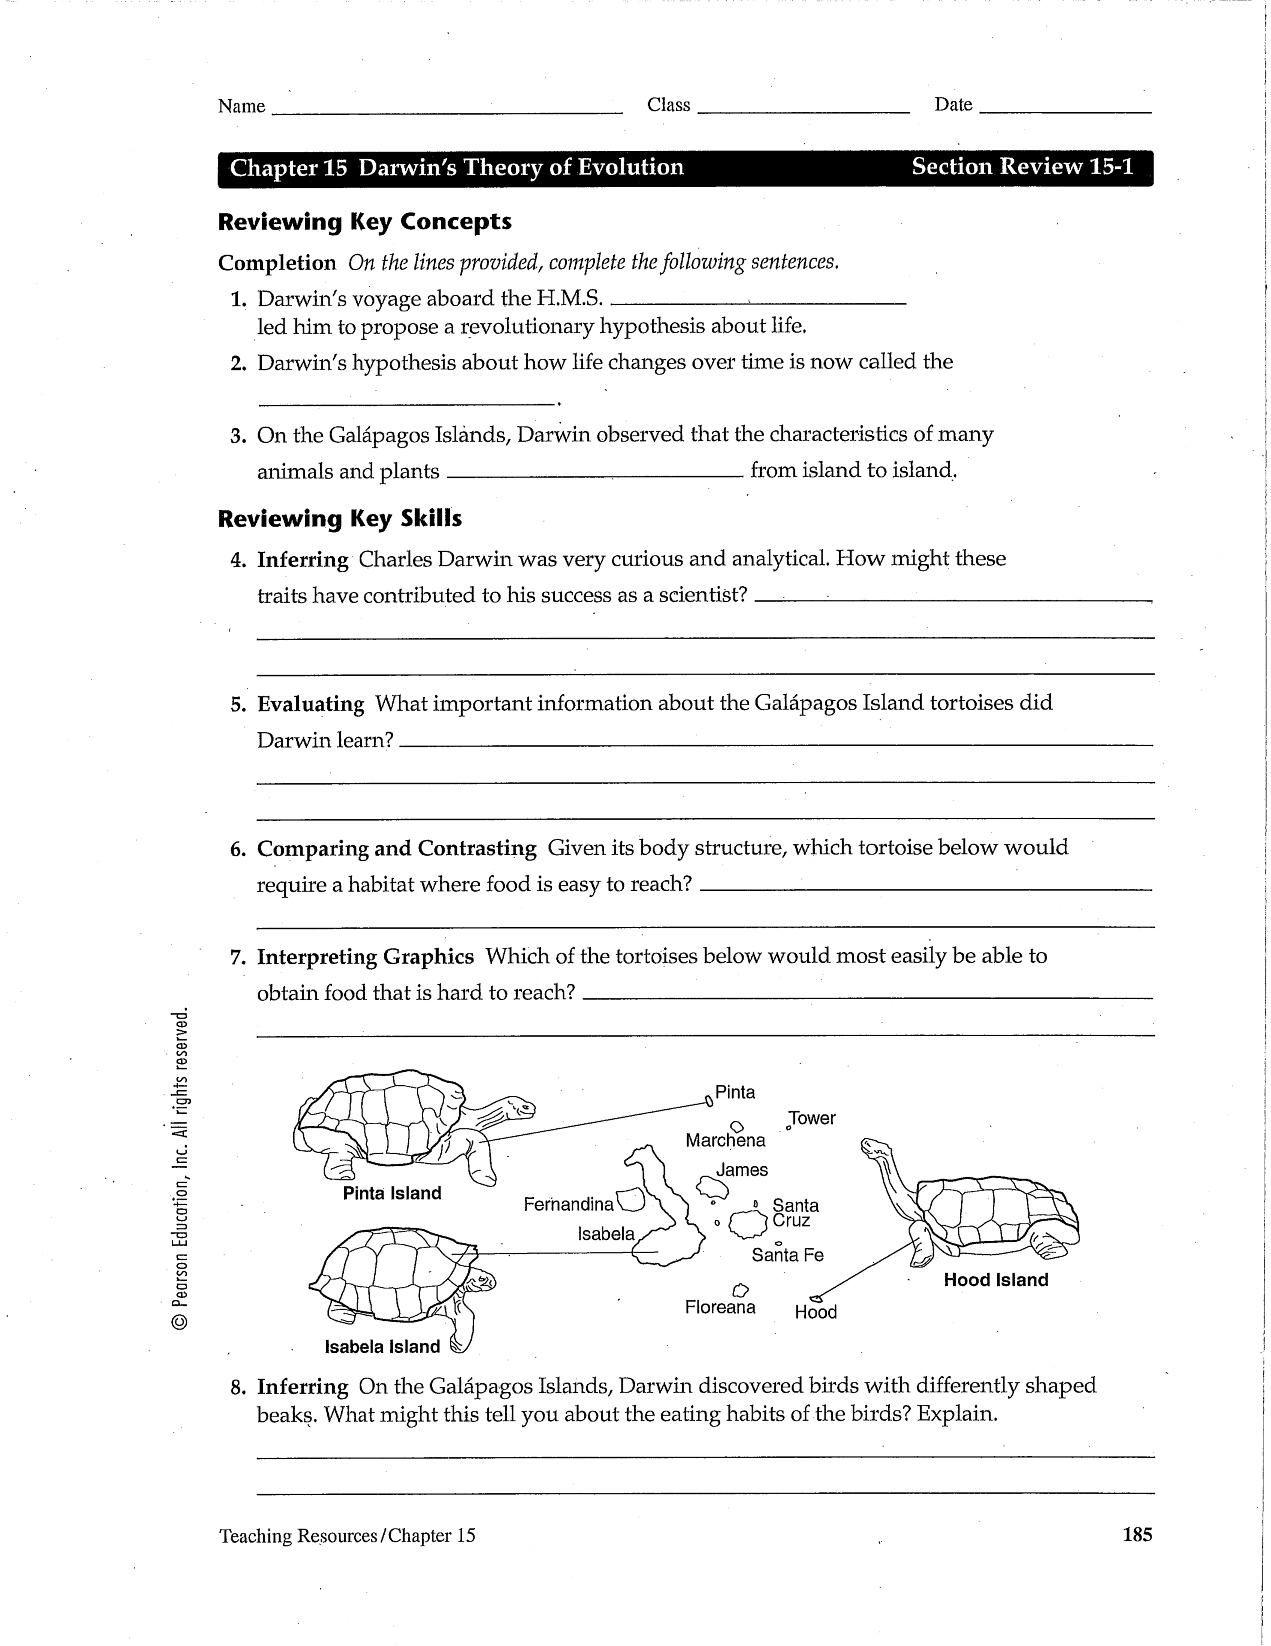 Worksheets Evidence Of Evolution Worksheet darwins theory of evolution worksheet chapter 15 reviewing key concepts